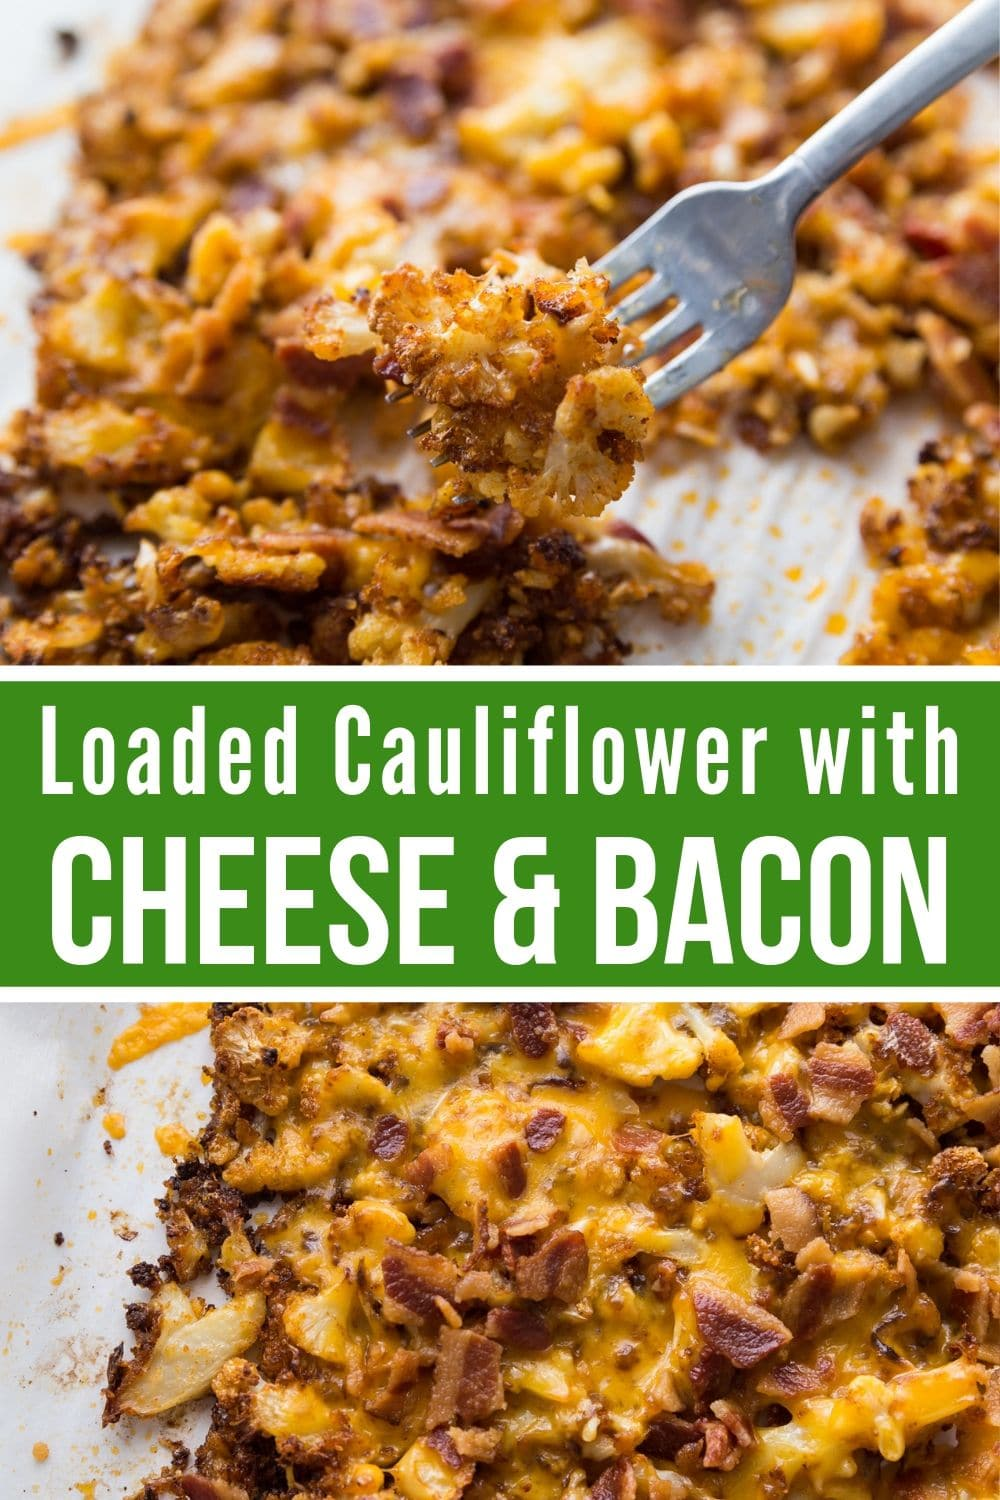 Collage of Loaded roasted Cauliflower with Cheese and Bacon.